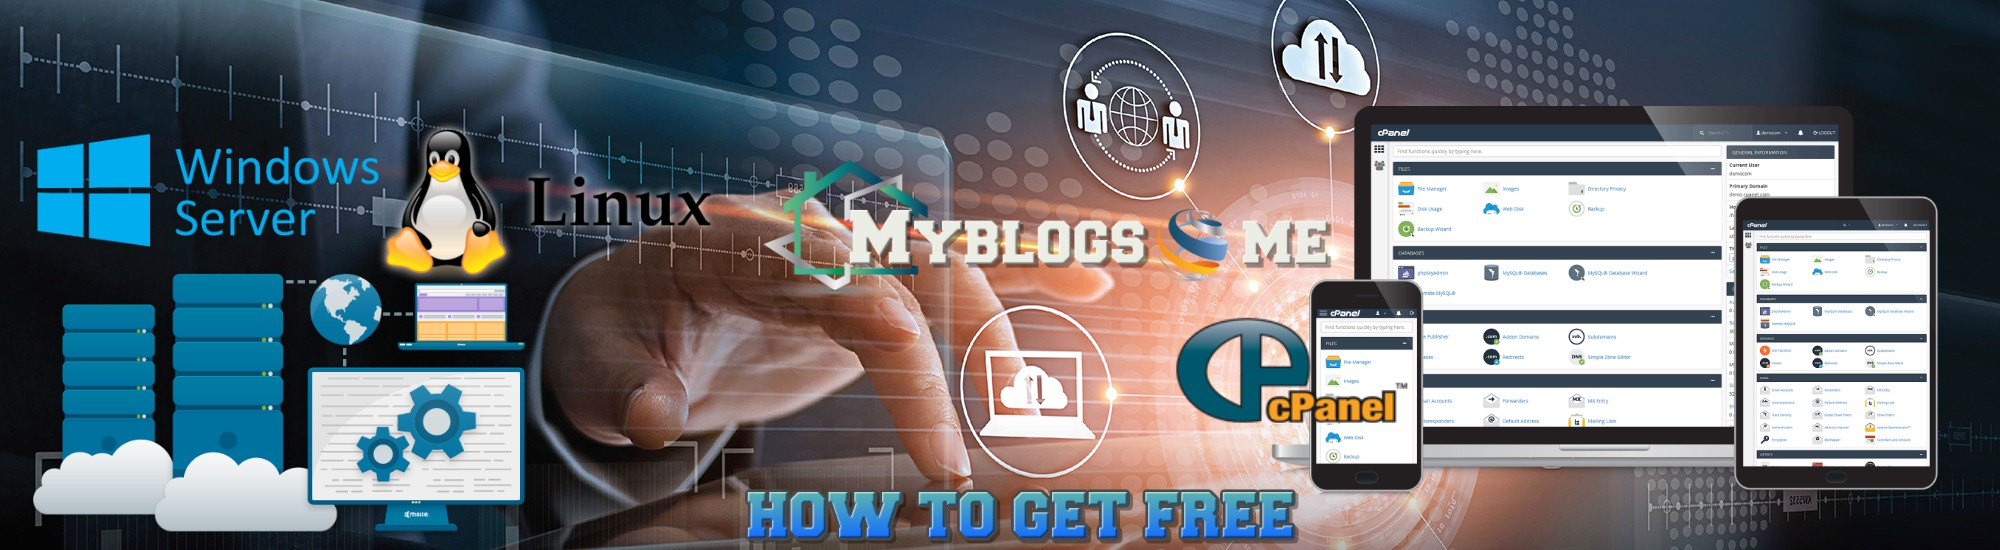 How to get free Cpanel hosting with 15 GB | Limited Offer